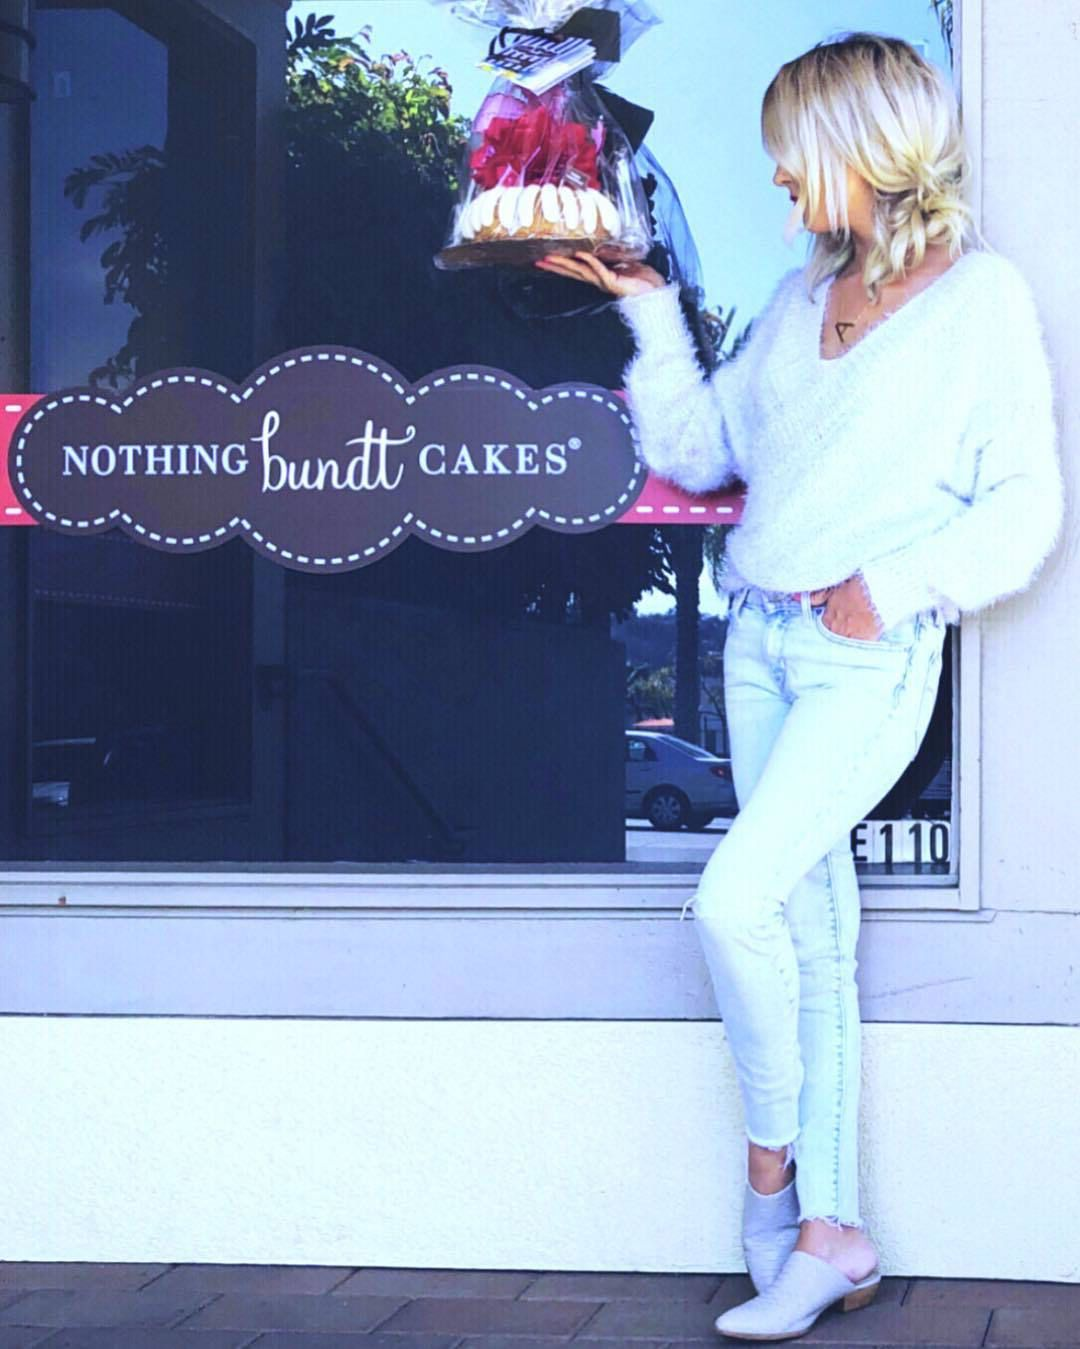 Nothing bundt cakes at endless summer bridal expo on aug